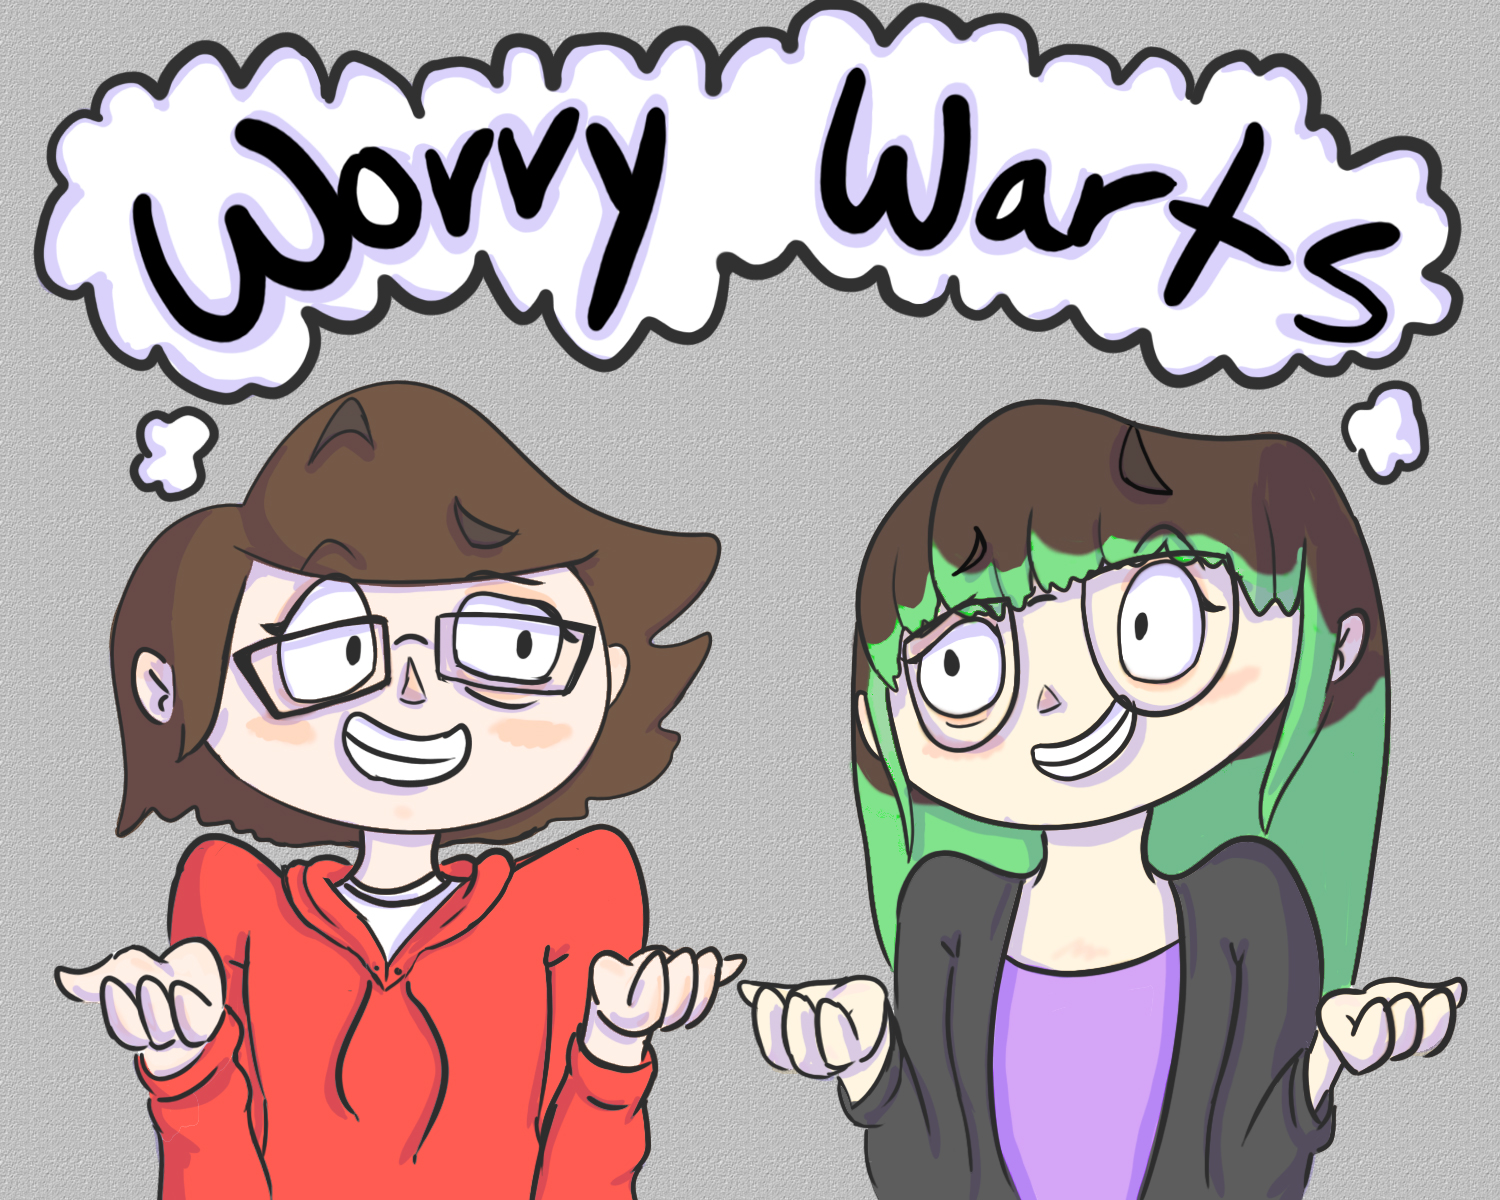 Worry Warts - Wednesday 4pm    Kristen Dossett & Mercedes D'Agostino   Two anxiety ridden art students trying to make sense of the world around them. We discuss topics ranging from day to day problems to existentialism in hopes of creating a relatable yet interesting commentary on the human condition. Did we mention that we're condescending art students?  Talk Show  Genre: Comedy/Lifestyle